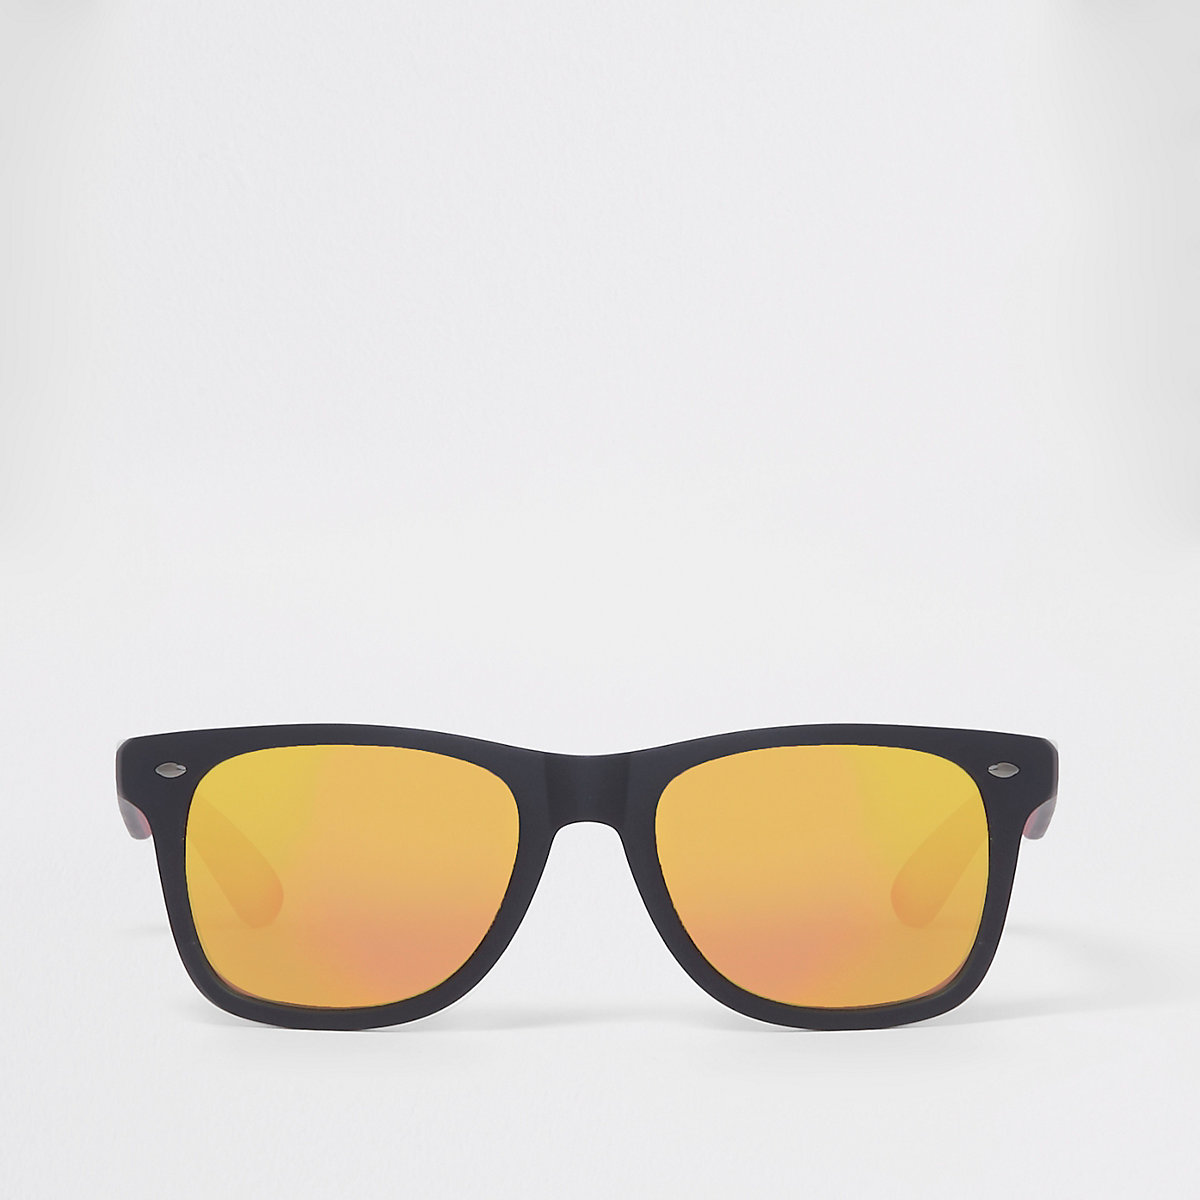 Black red lens retro square sunglasses